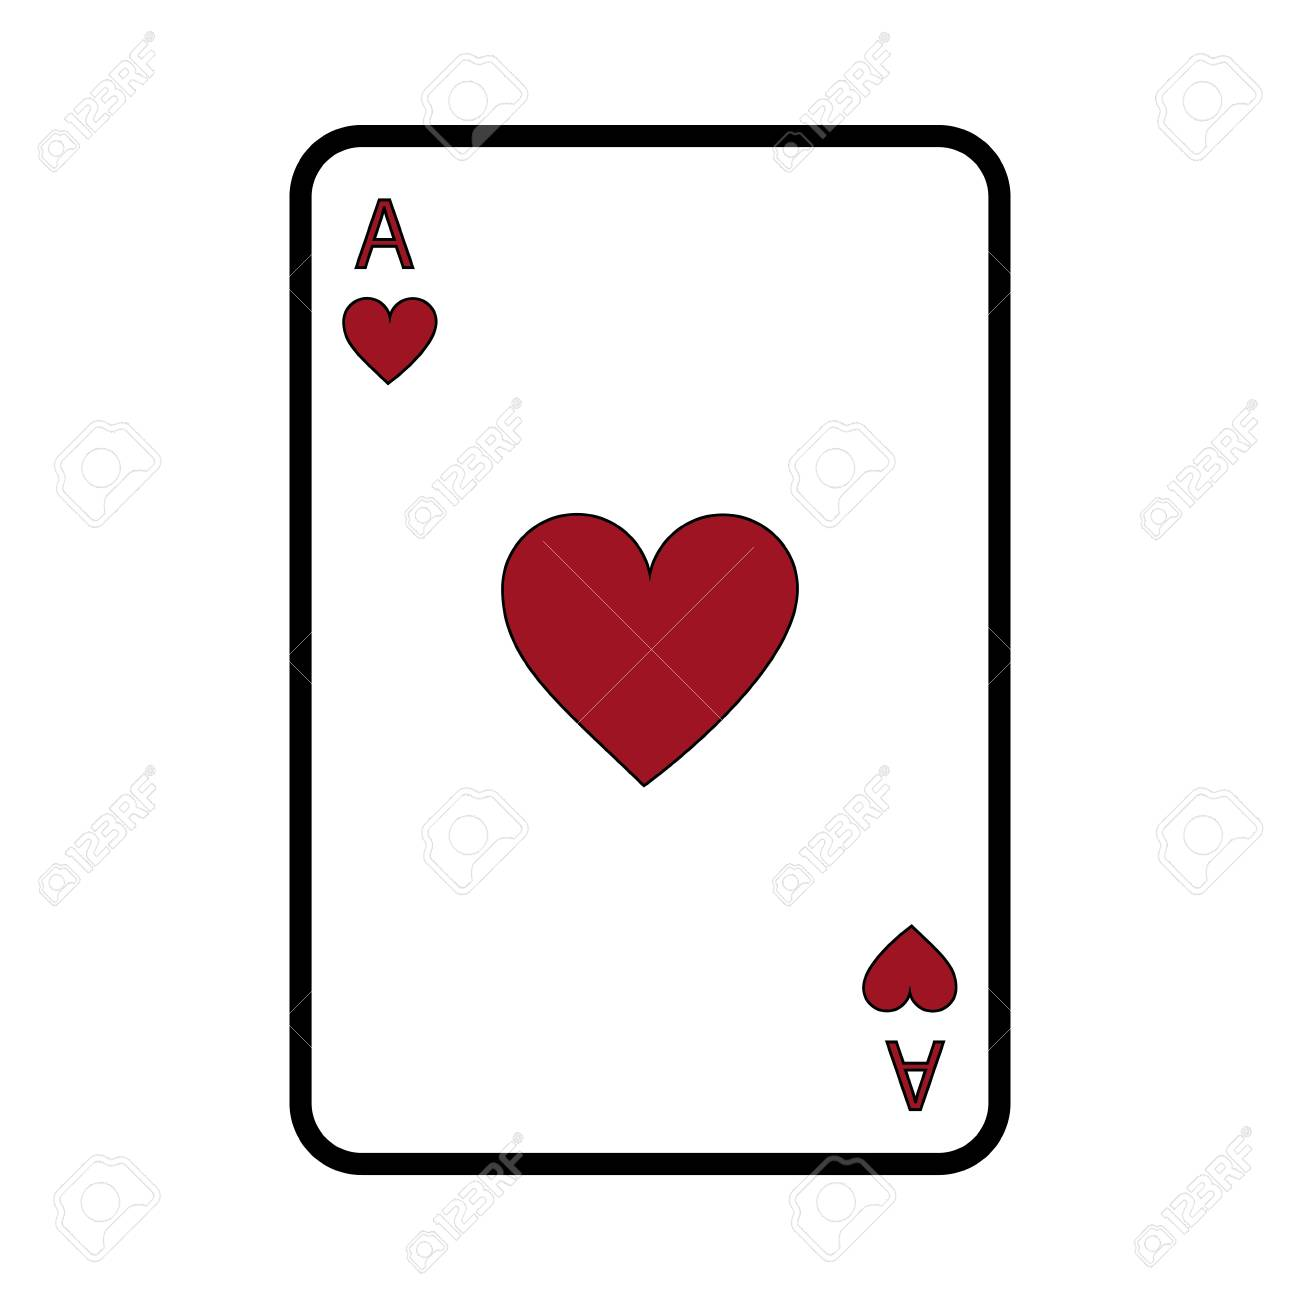 Poker Casino Ace Heart Card Playing Icon Vector Illustration Royalty Free Cliparts Vectors And Stock Illustration Image 90180146